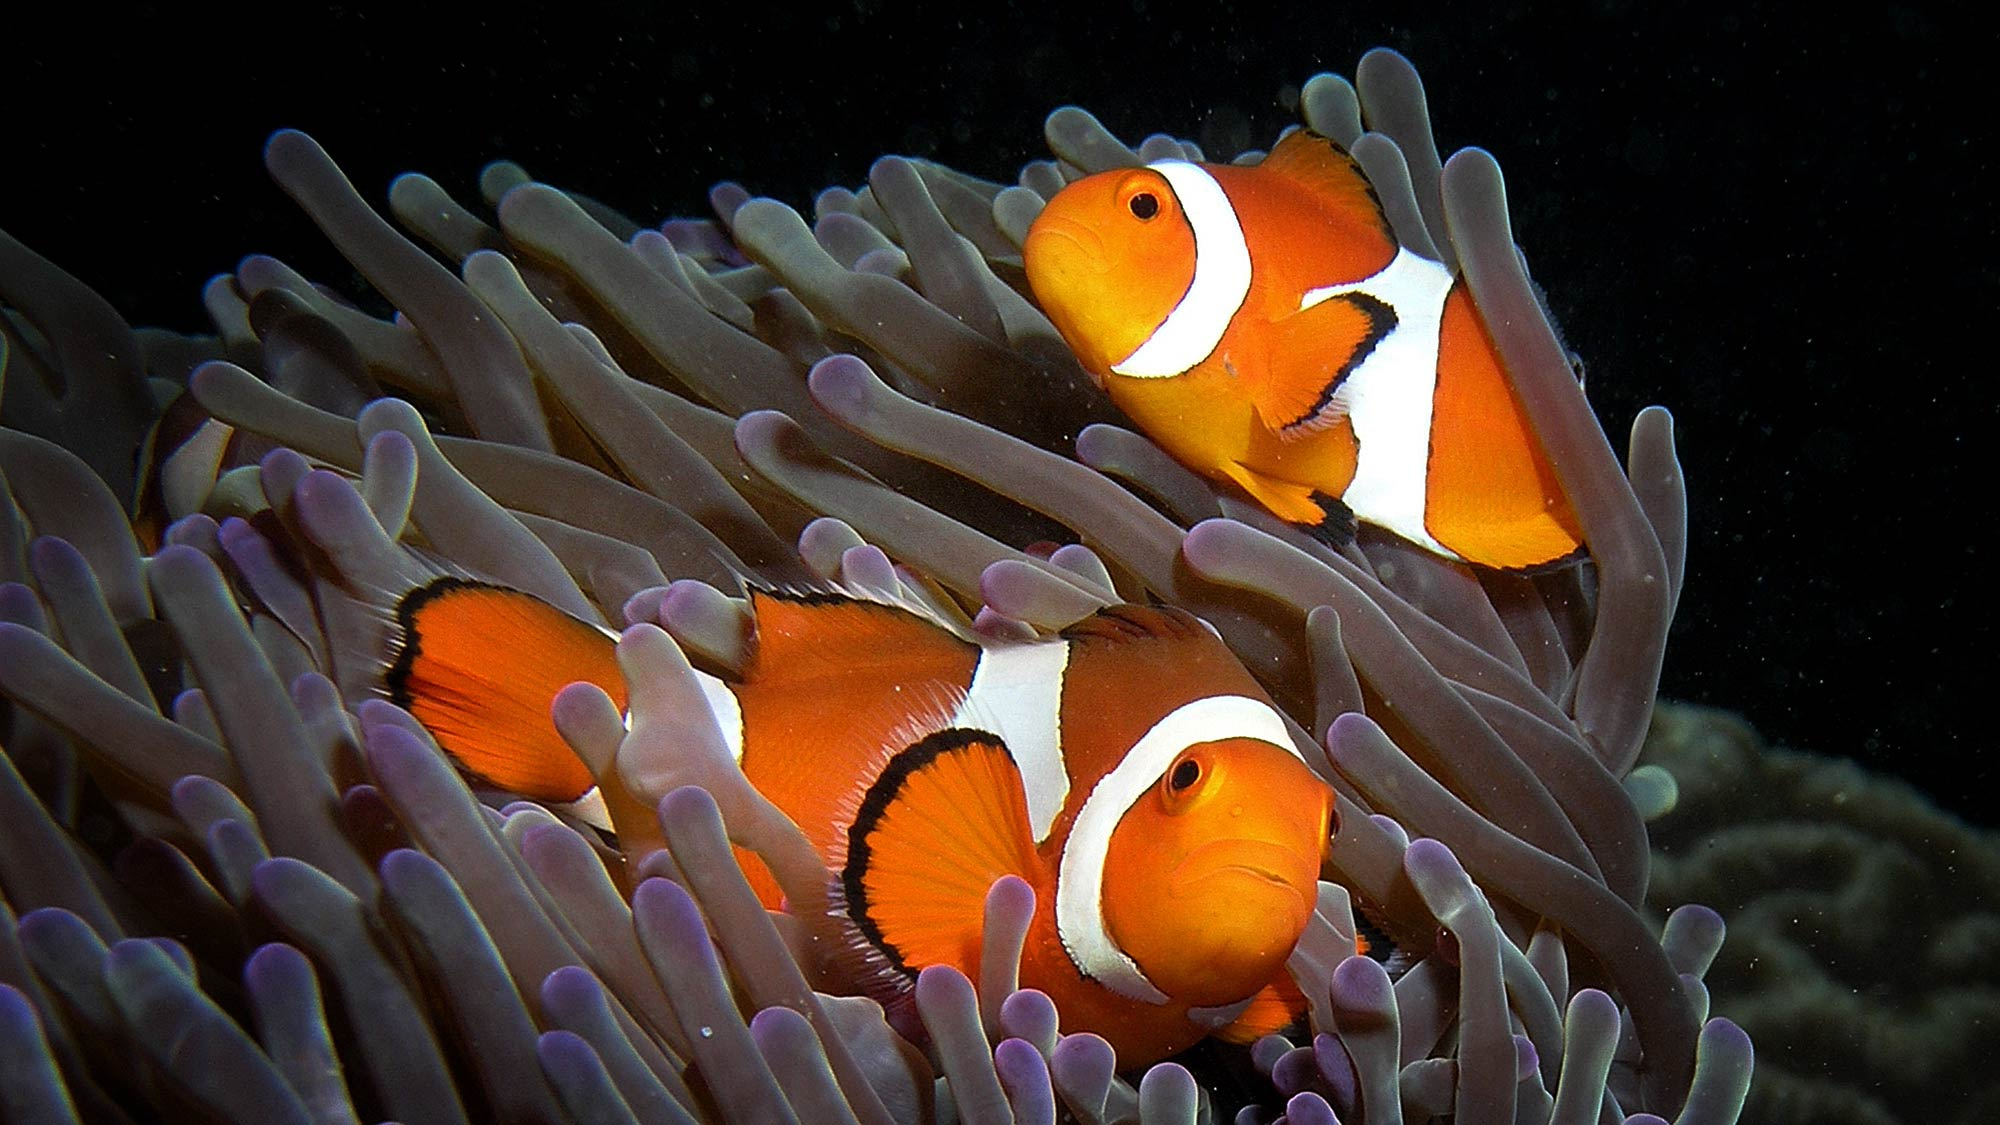 Anemone purple anemonefish CC BY-SA 3.0 Photo: Nick Hobgood/Wikipedia. Purple anemone (Heteractis magnifica) and resident anemonefish (Amphiprion ocellaris) (clownfish) in East Timor. http://en.wikipedia.org/wiki/Ocellaris_clownfish#mediaviewer/File:Anemone_purple_anemonefish.jpg